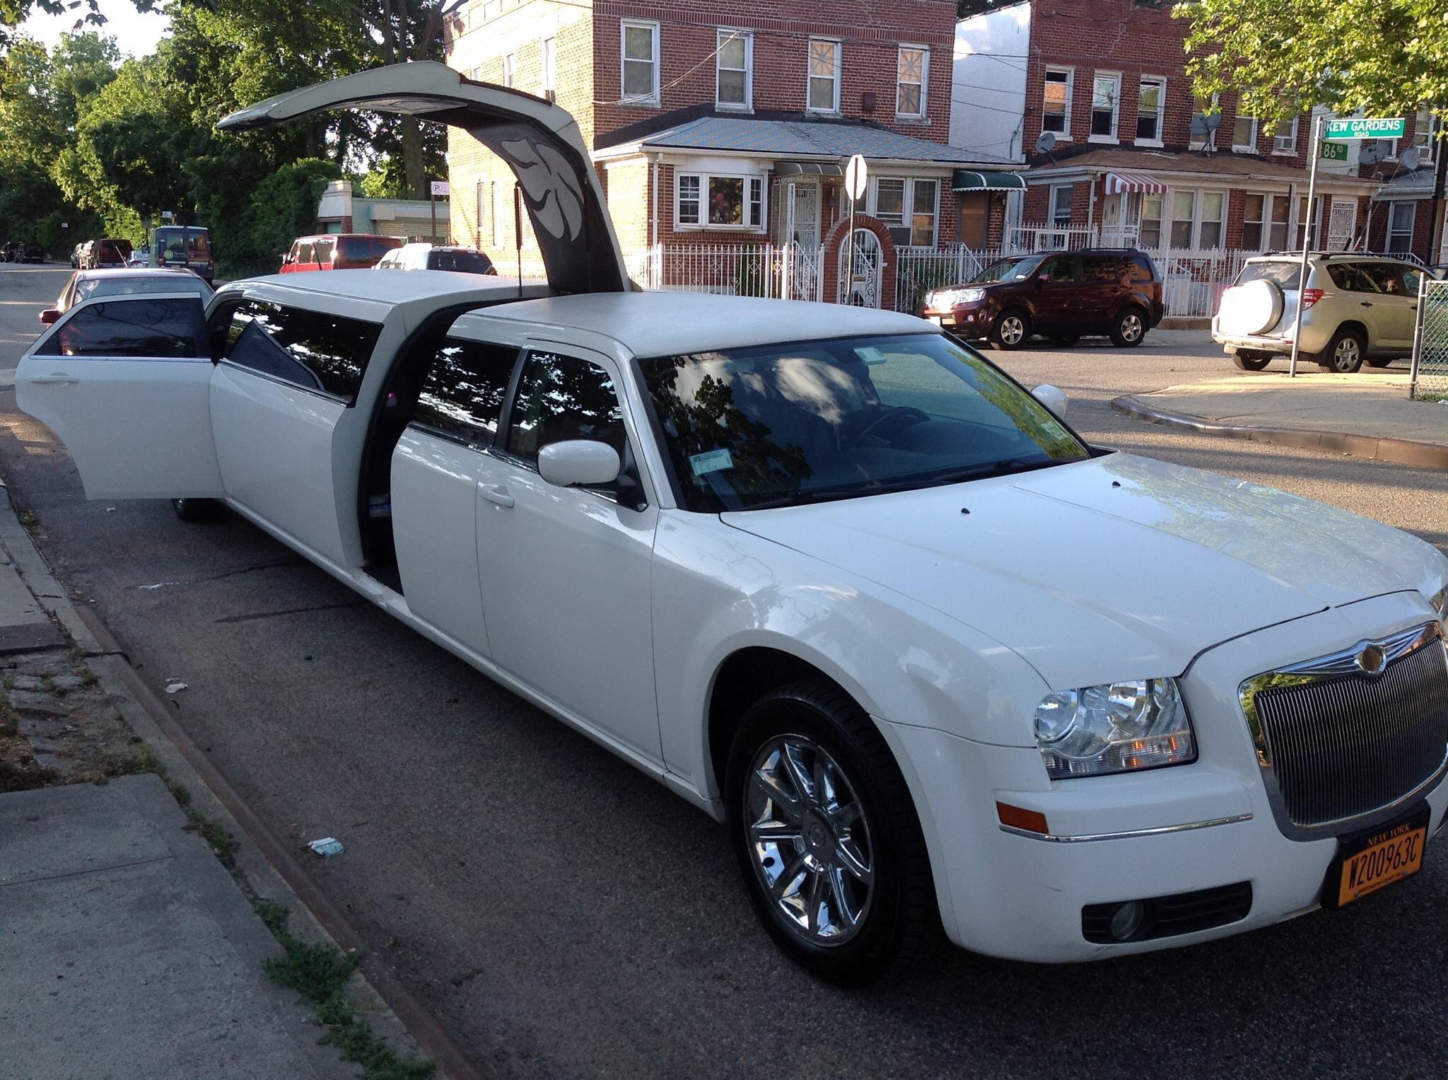 Our new york city wedding limo